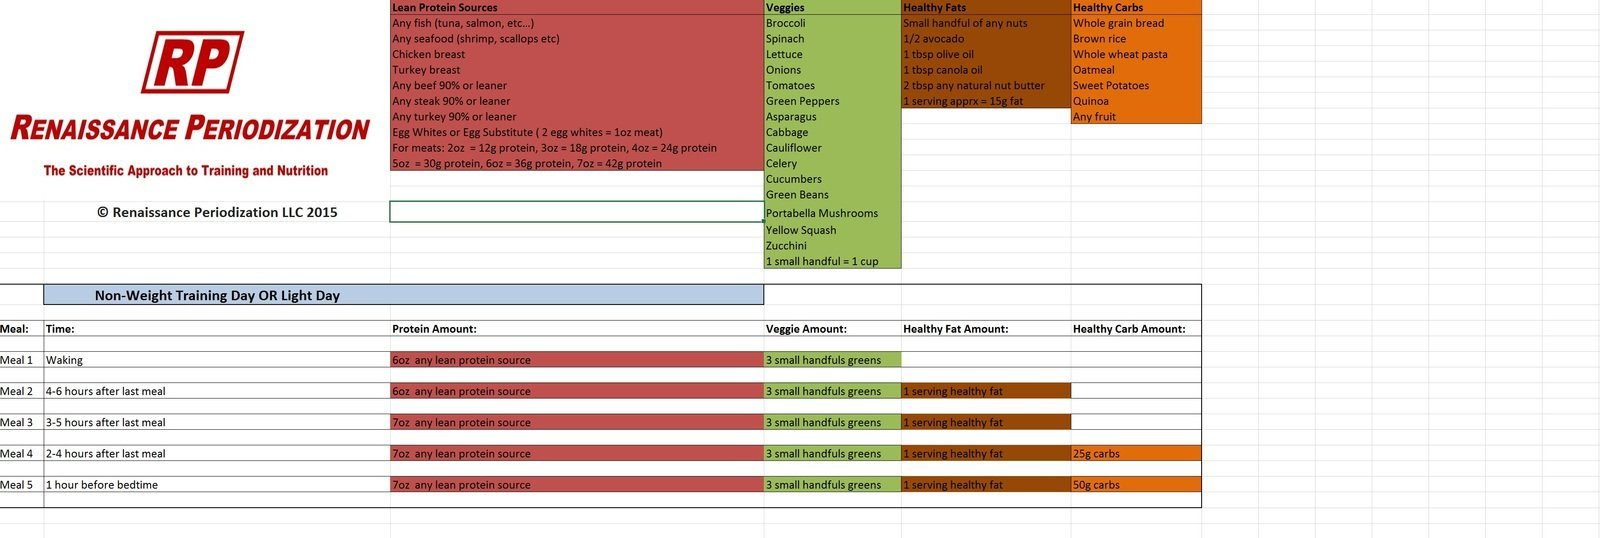 Renaissance Diet Spreadsheet Free With Rp Templates Free  Reeviewer.co